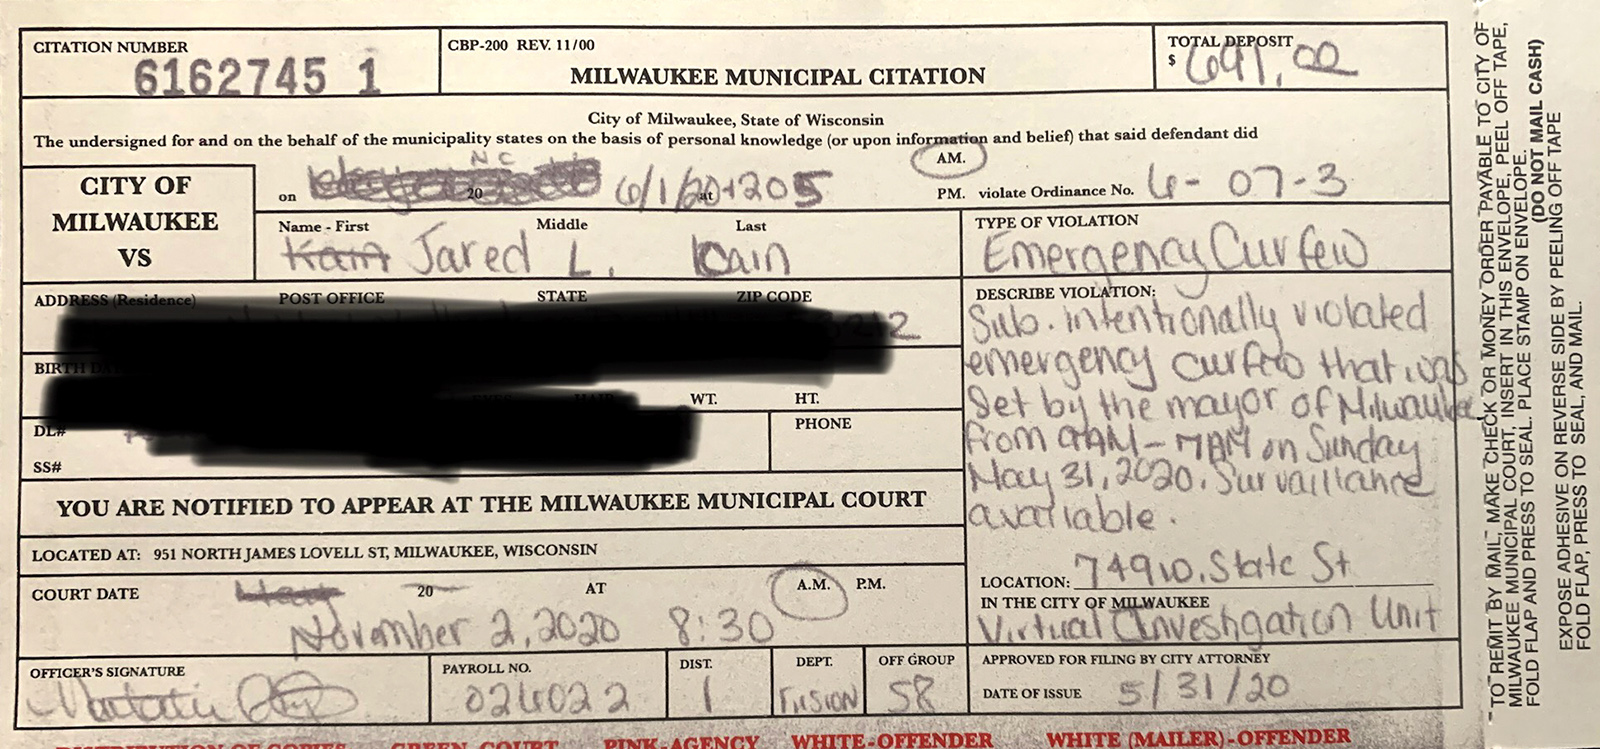 Milwaukee Municipal Citation form filed by police